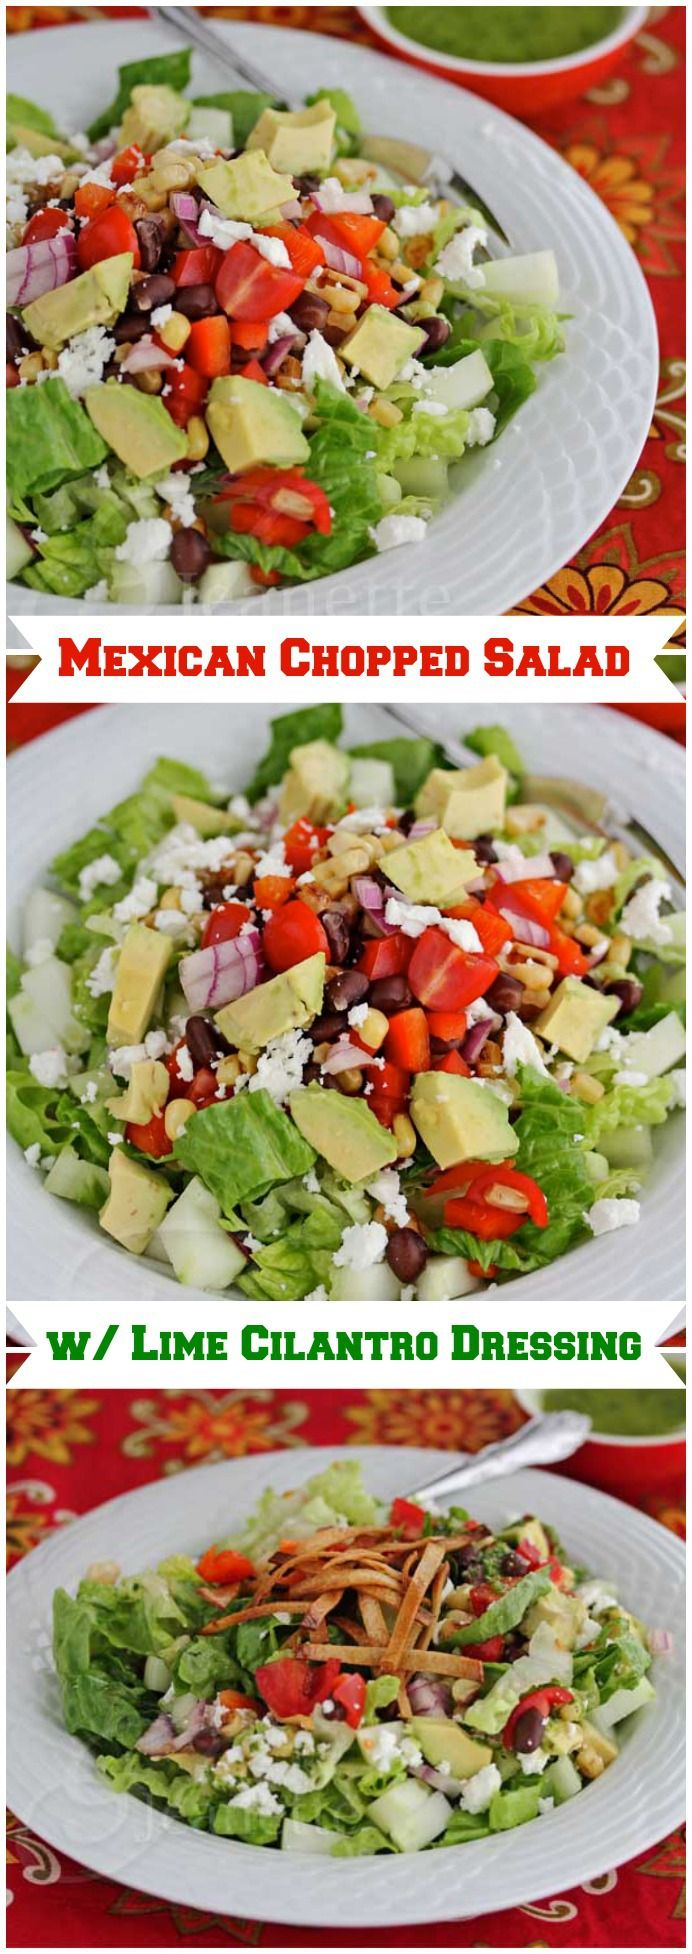 Mexican Chopped Salad With Lime Cilantro Dressing Recipe